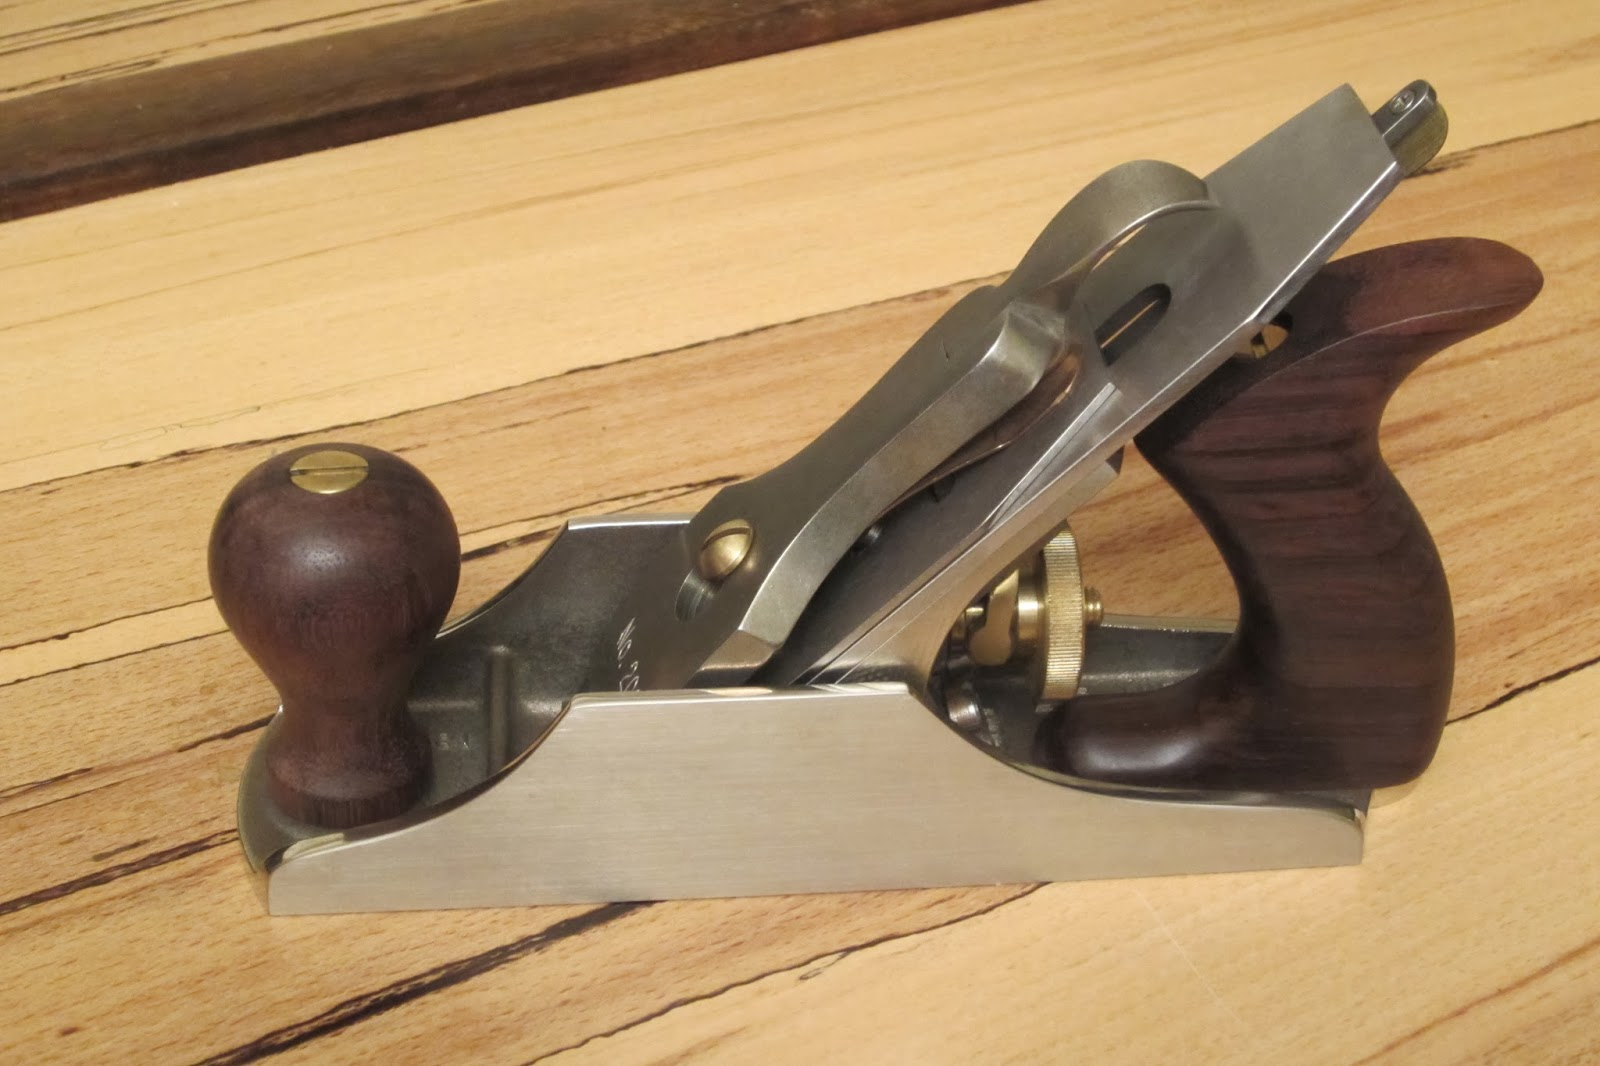 lee nielsen planes. i recently aquired a limited edition lie nielsen no 2, or in this case, an ln 2000 bench plane. it is cast white bronze with rosewood handles. lee planes